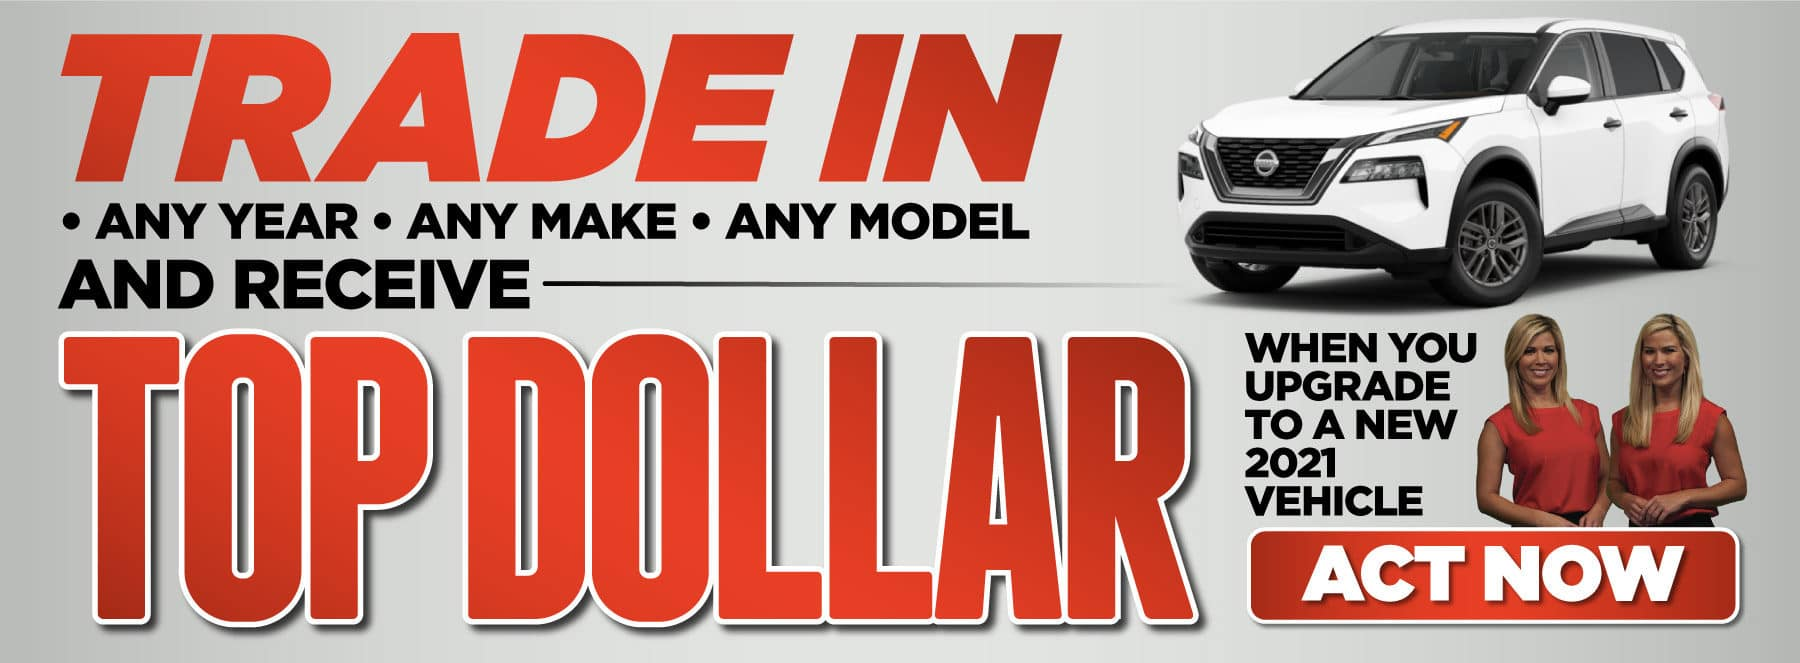 Trade In and Receive Top Dollar for Your Trade - ACT NOW